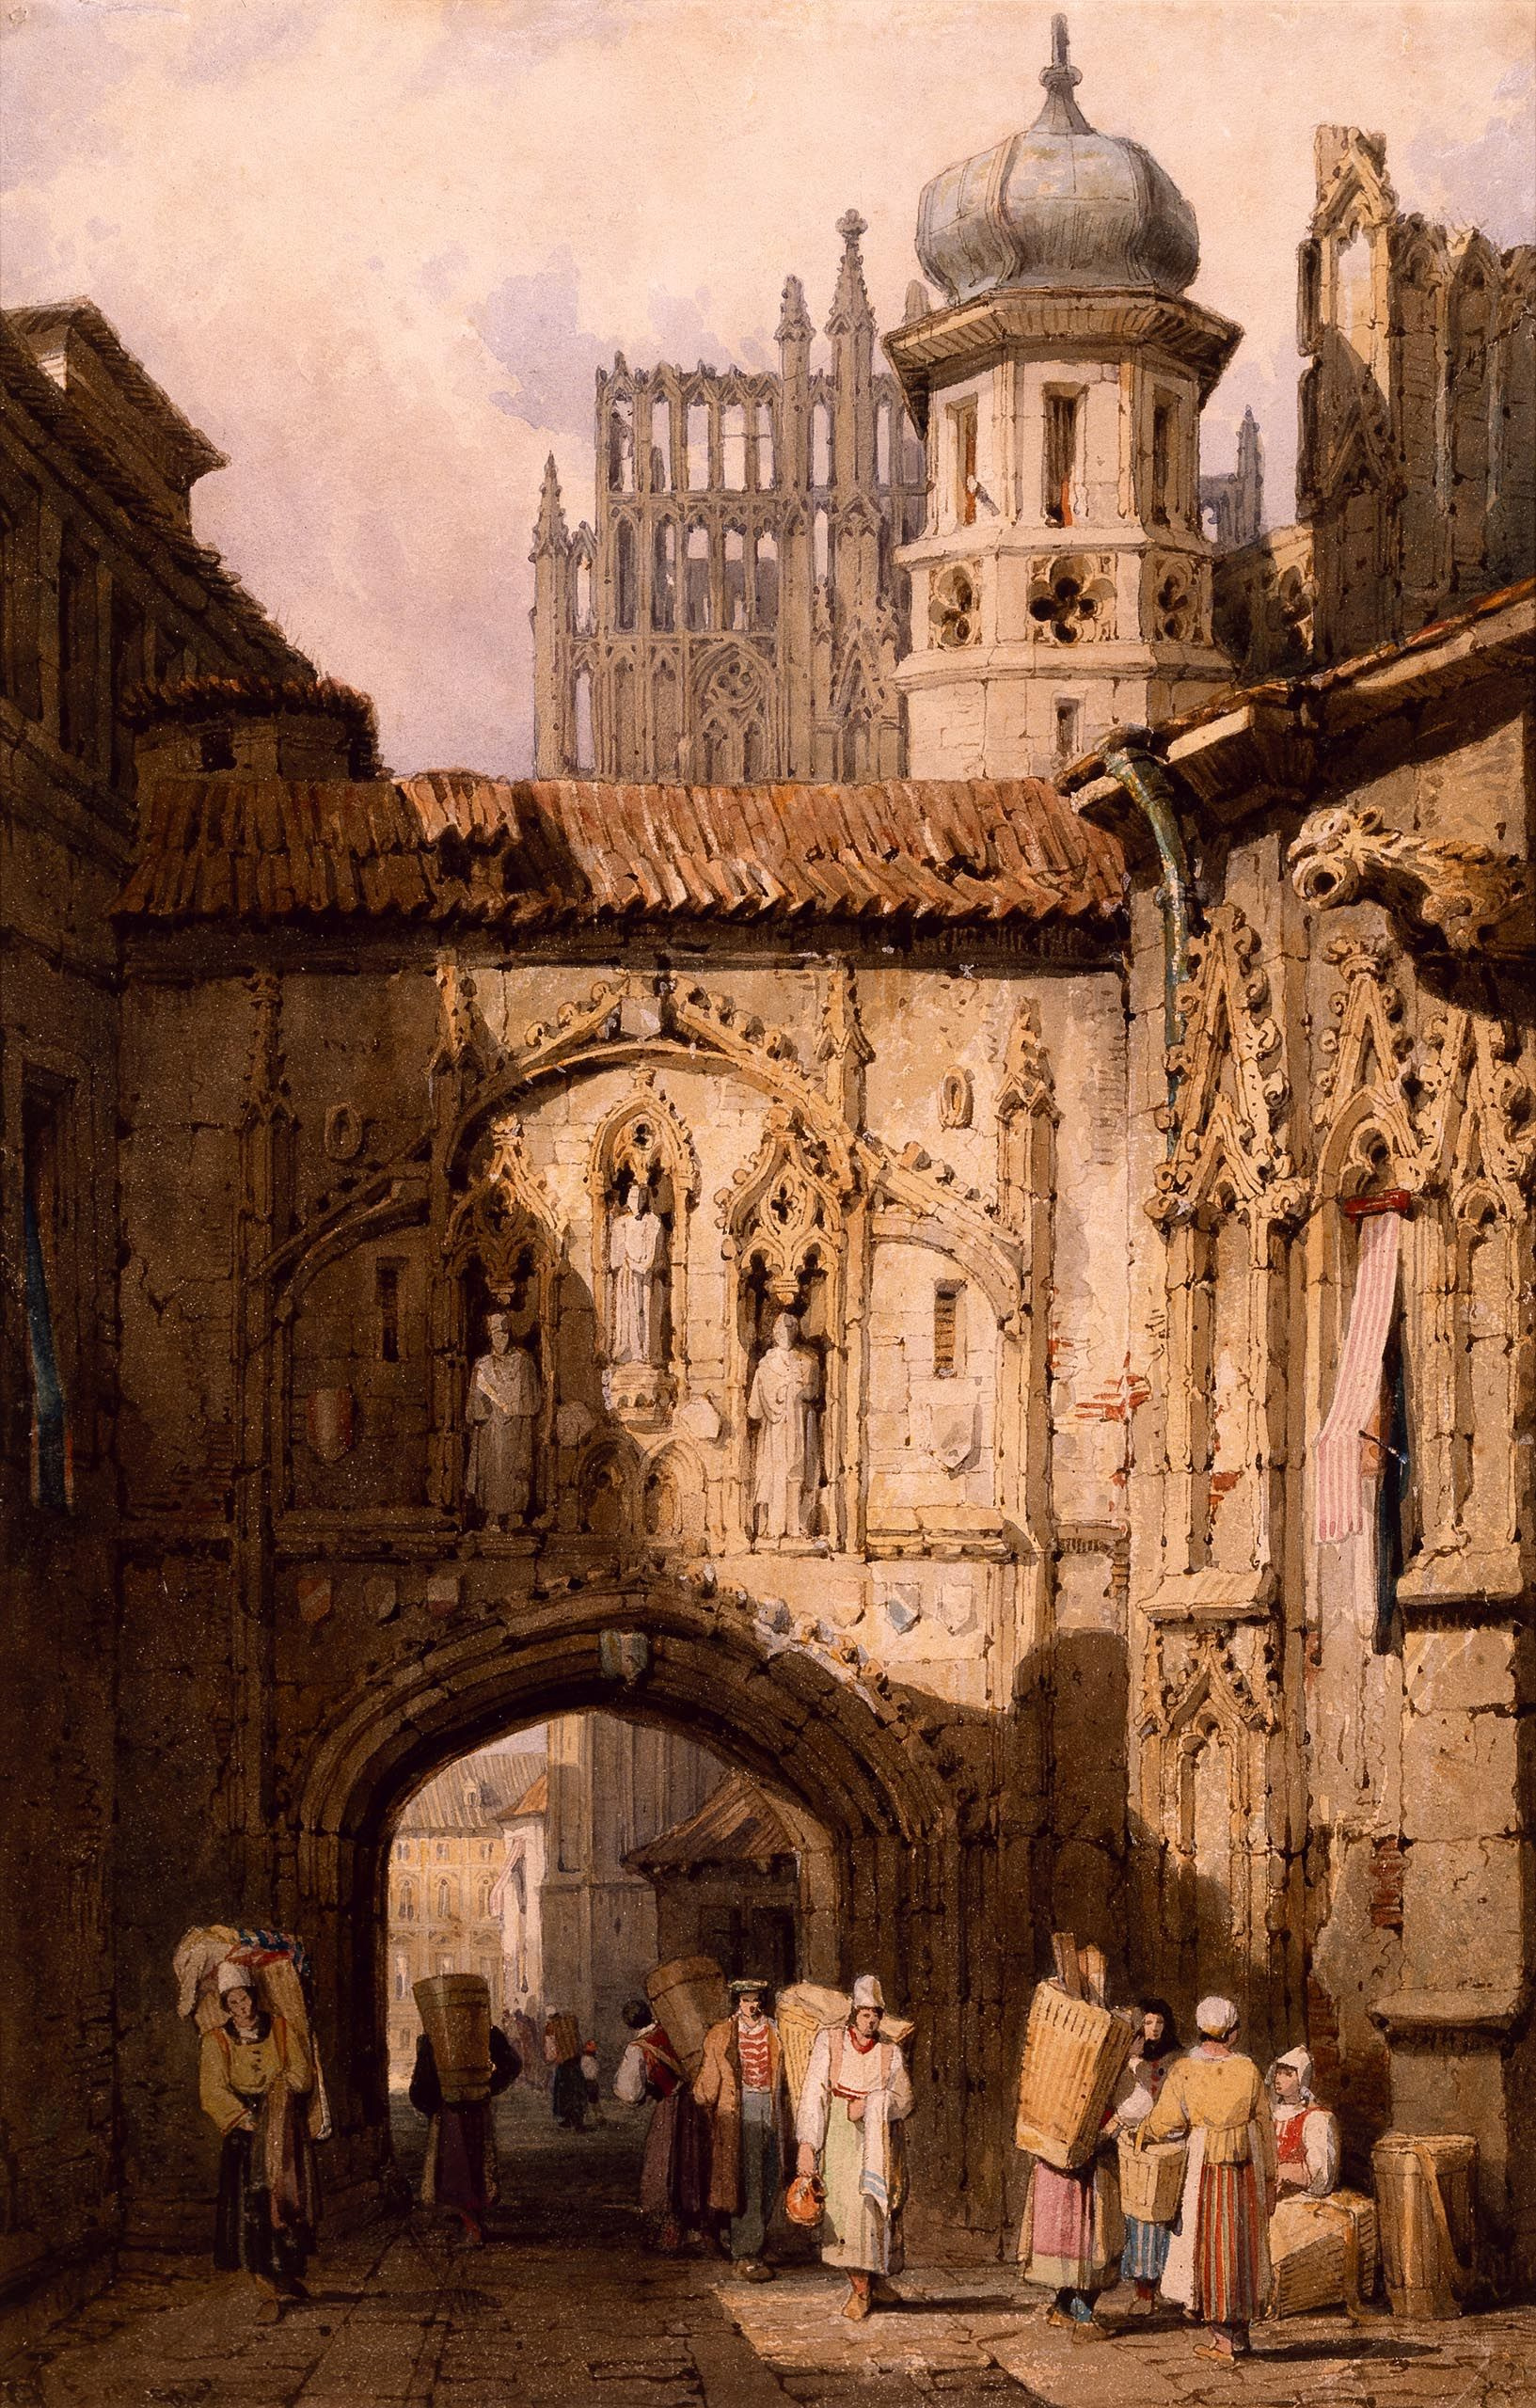 http://upload.wikimedia.org/wikipedia/commons/6/65/A_View_in_Nuremberg_by_Samuel_Prout.jpg